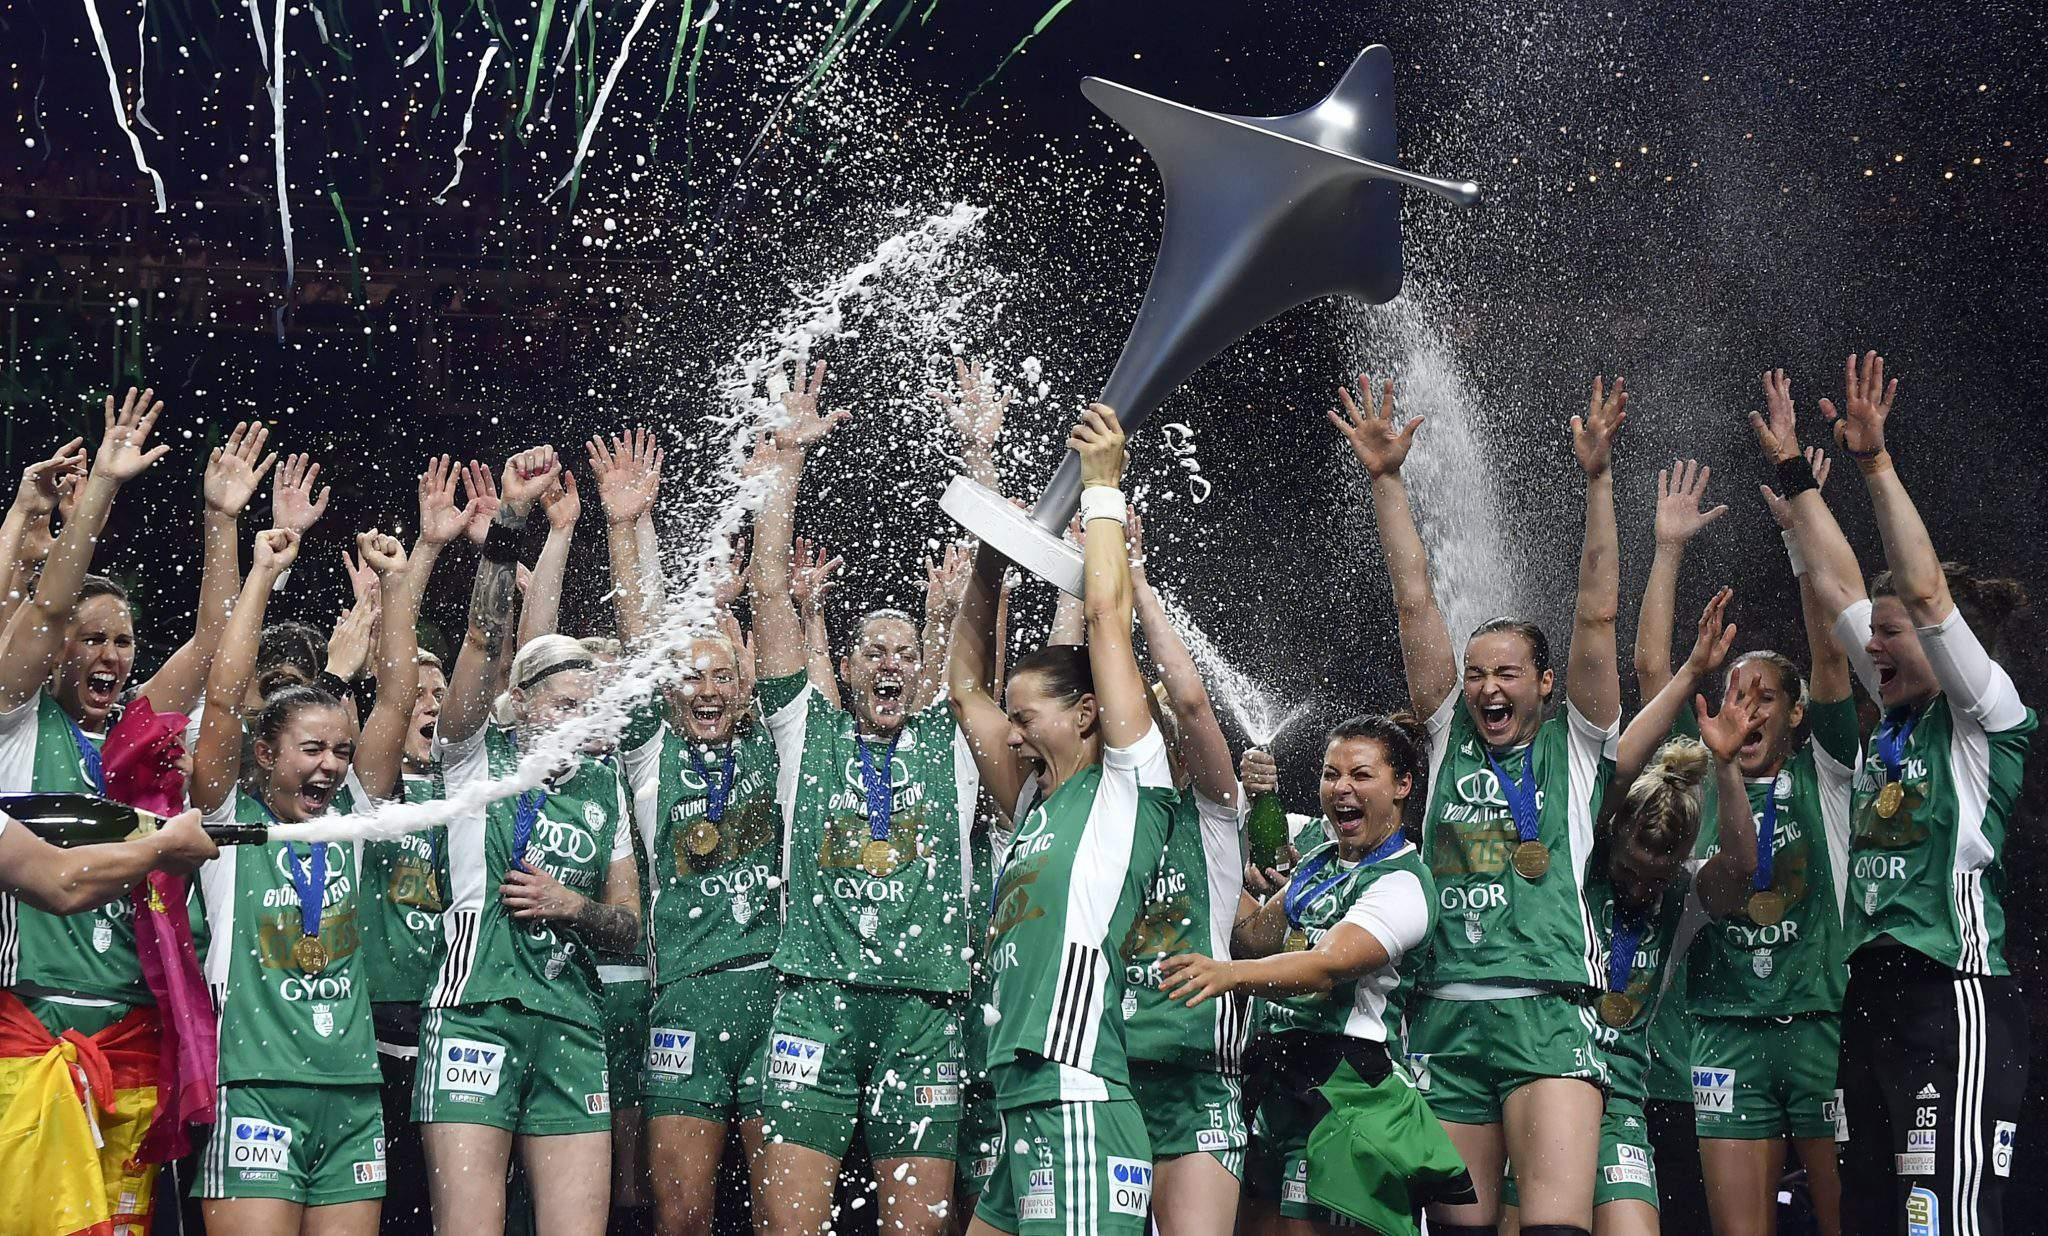 GYÖR BECOME FIRST TO DEFEND FINAL4 TITLE